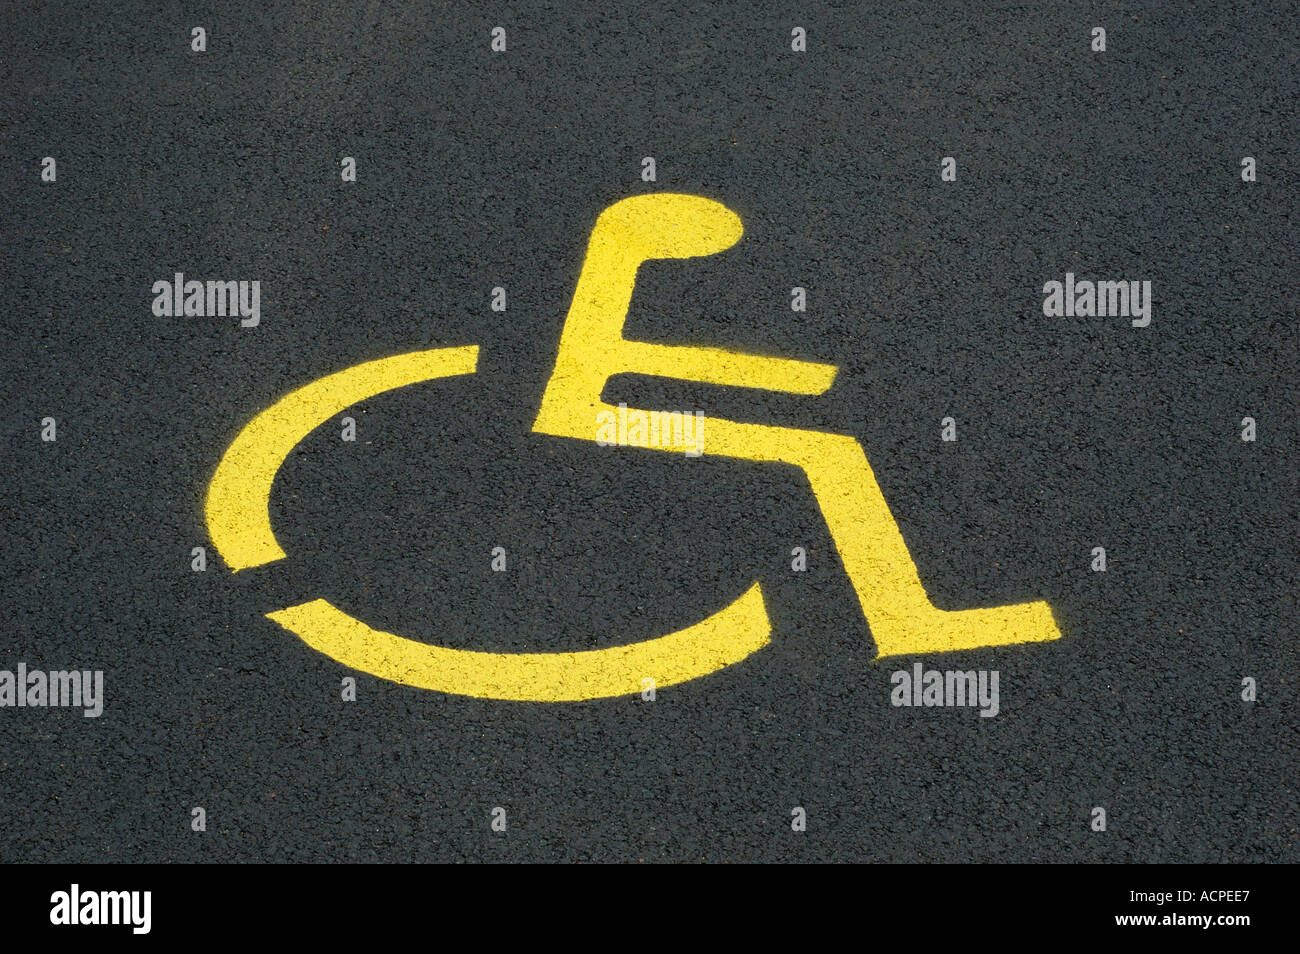 handicapped parking spot painted parking space for handicap people persons in a parking bay - Stock Image